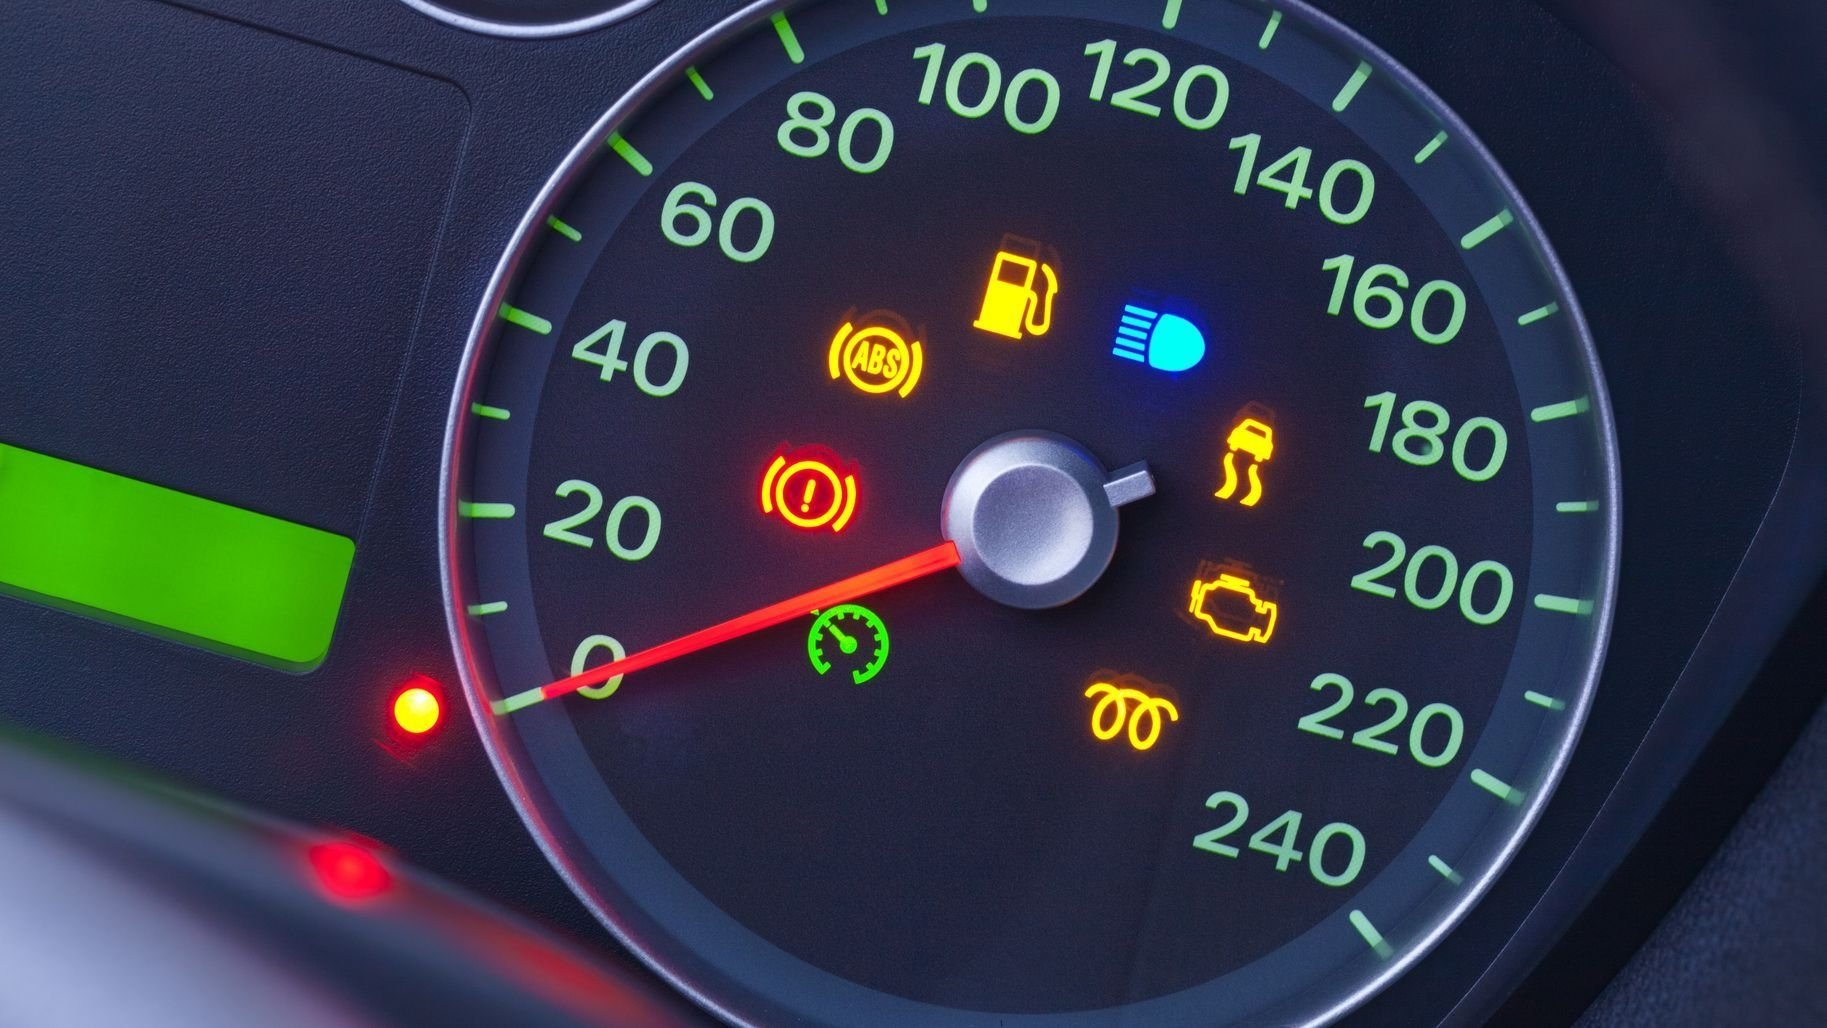 Dodge Ram 2500 Dash Light Meanings >> What Dashboard Warning Lights Mean | Steve Landers CDJR